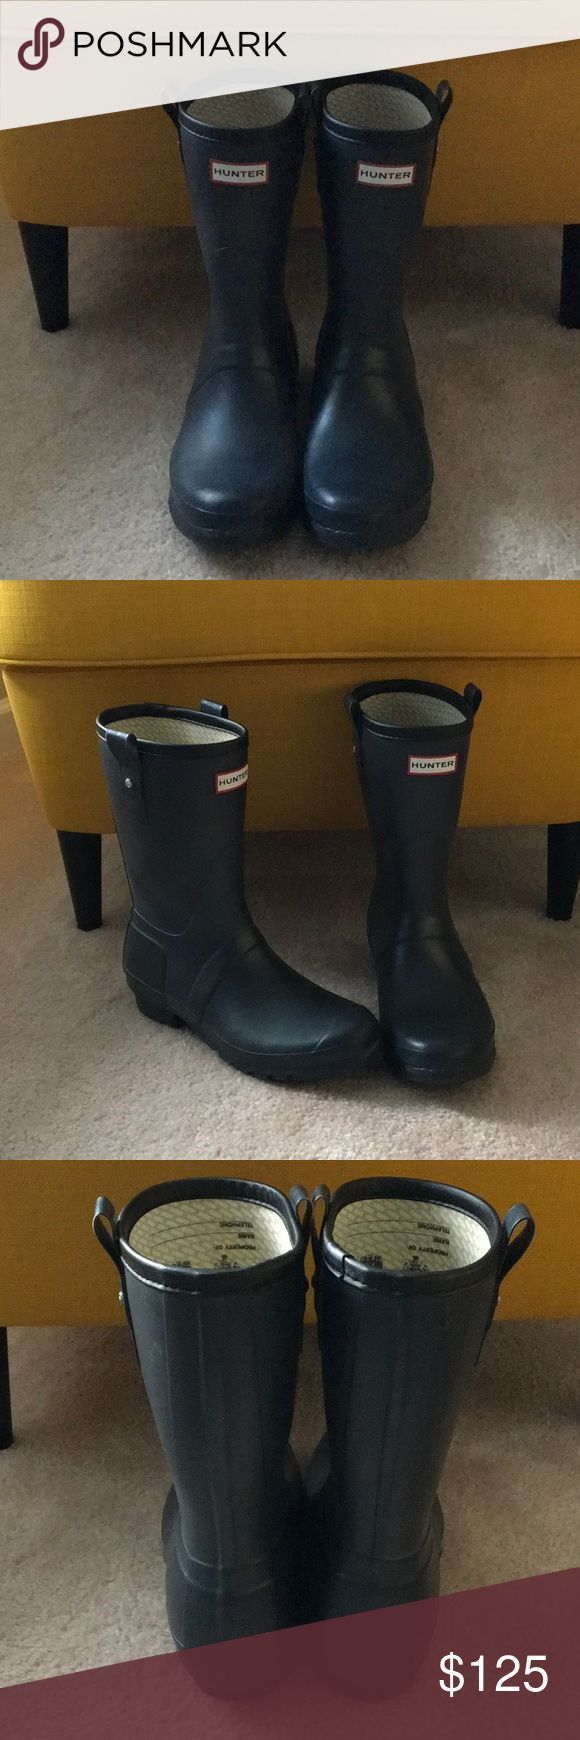 Hunter Rain Boots EUC, needs wiped off, other than that only minor wear. Men's 9 short. (Can fit a women's 10) Hunter Boots Shoes Rain & Snow Boots